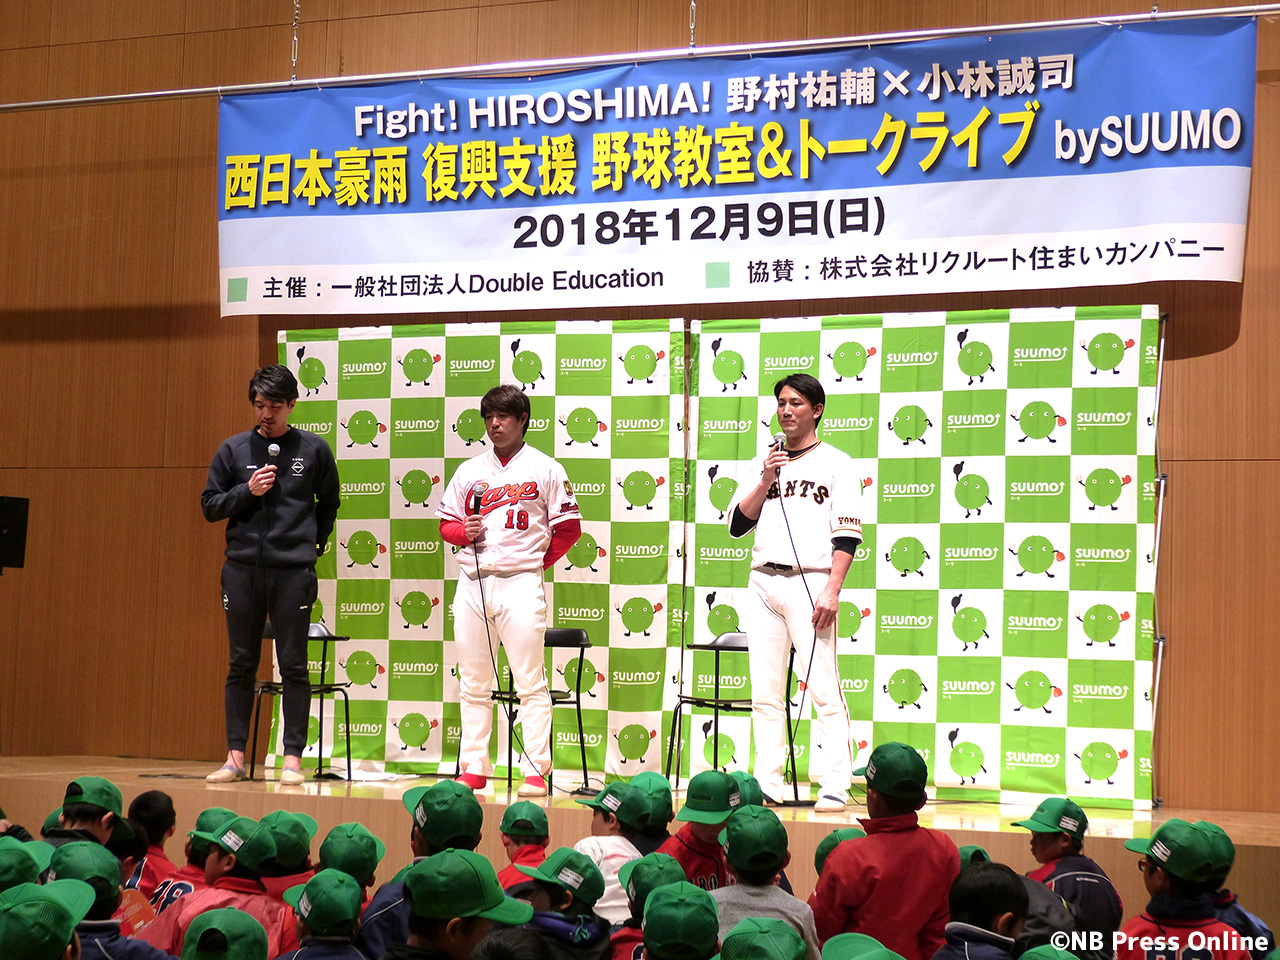 Fight! HIROSHIMA!野村祐輔×小林誠司 西日本豪雨 復興支援 野球教室&トークライブ by SUUMO